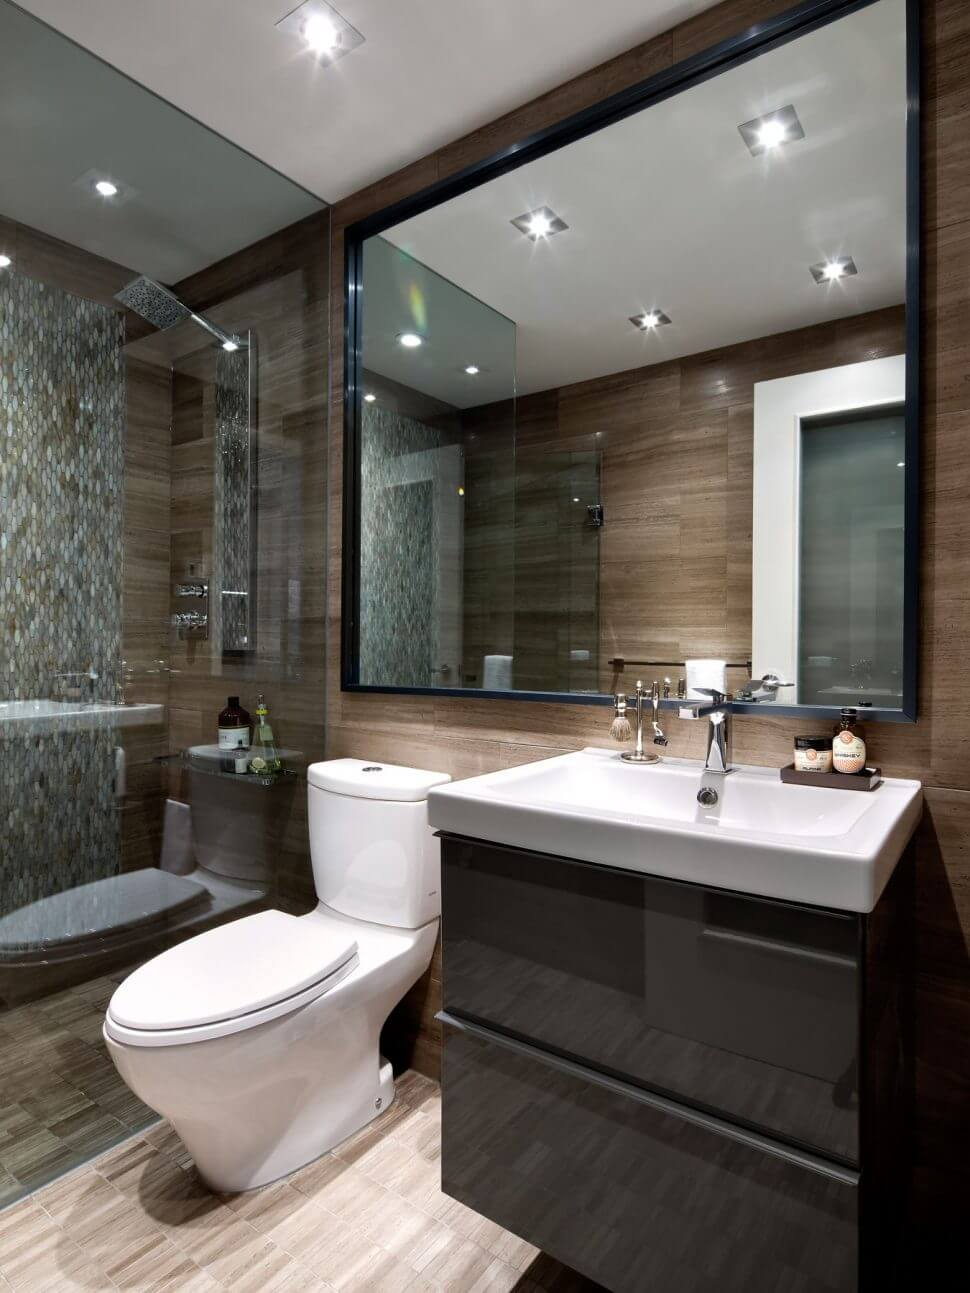 Sorting With Style & 27+ Bathroom Mirror Ideas for Small Bathroom - Unique ...